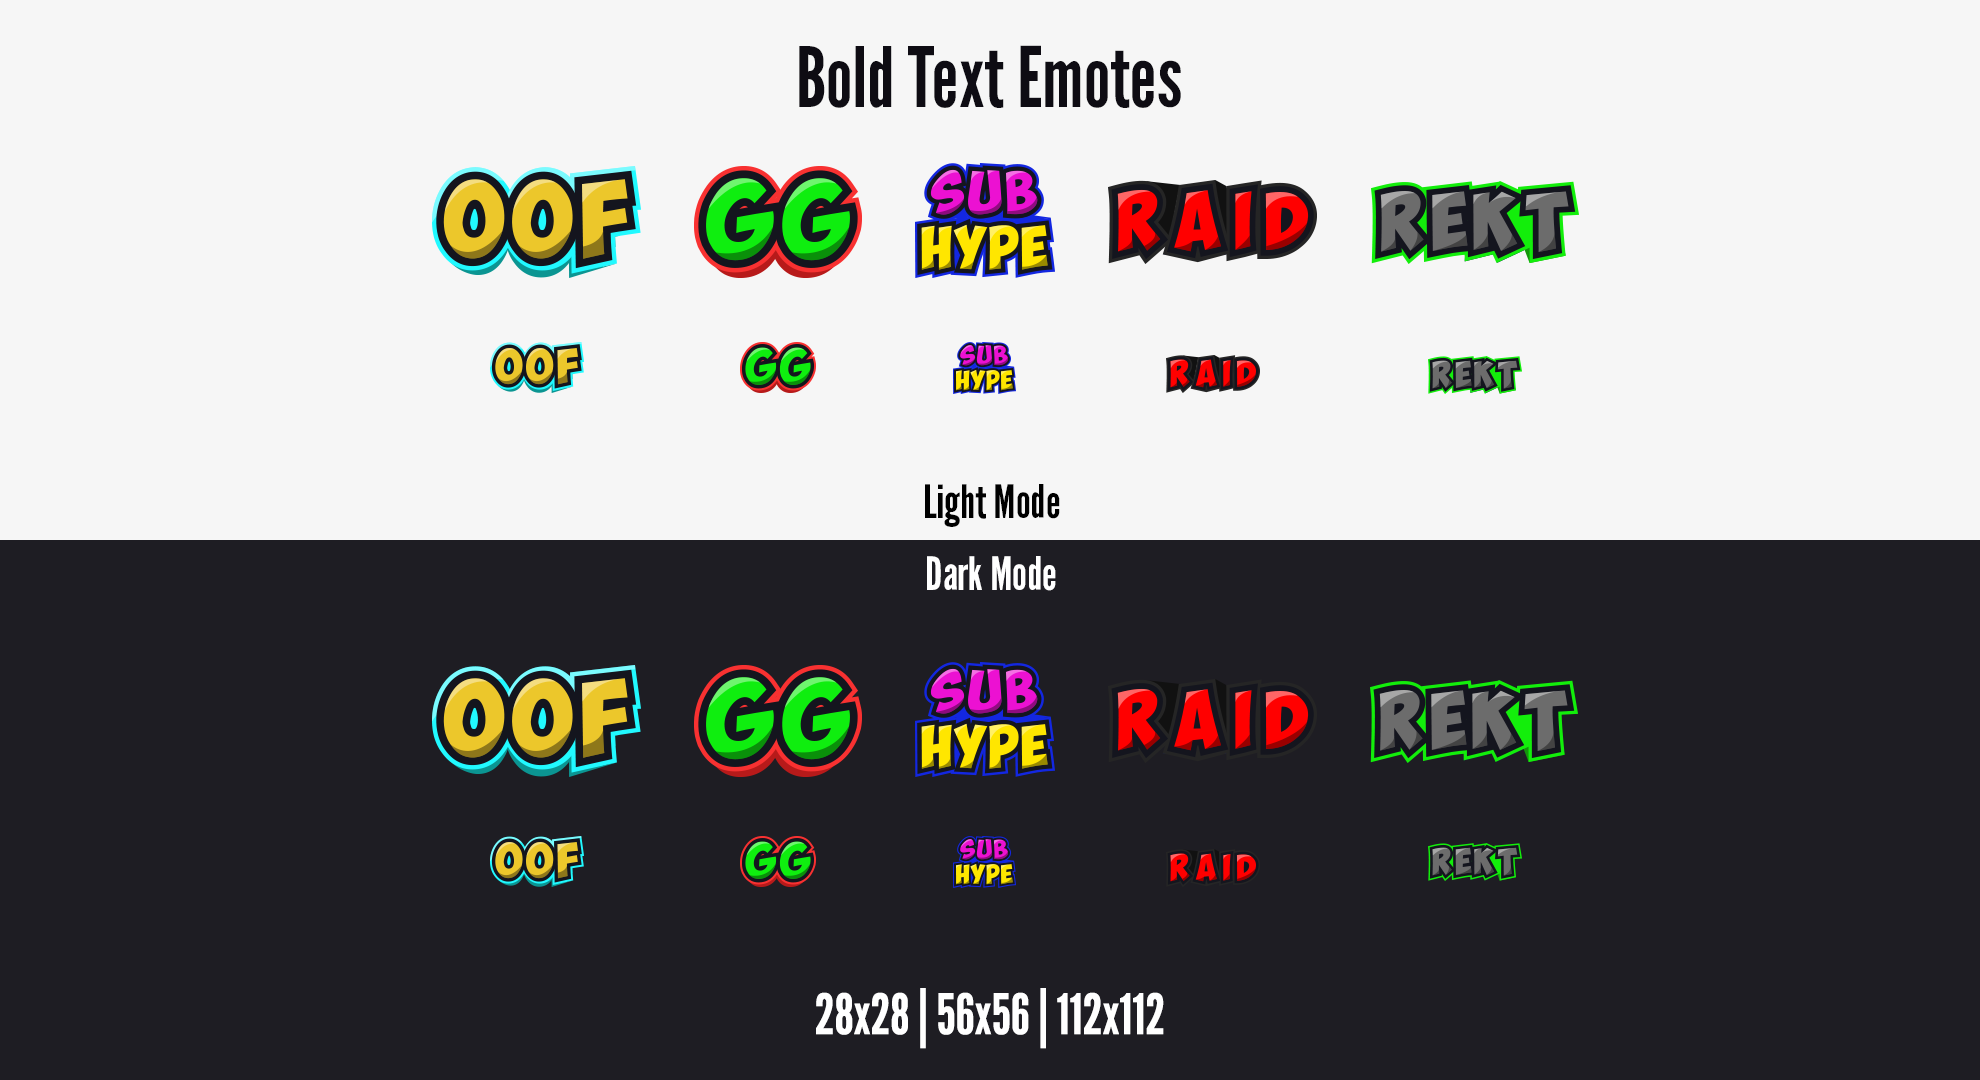 Twitch Emotes Bold Text Text Emotes Twitch Streaming Setup Twitch